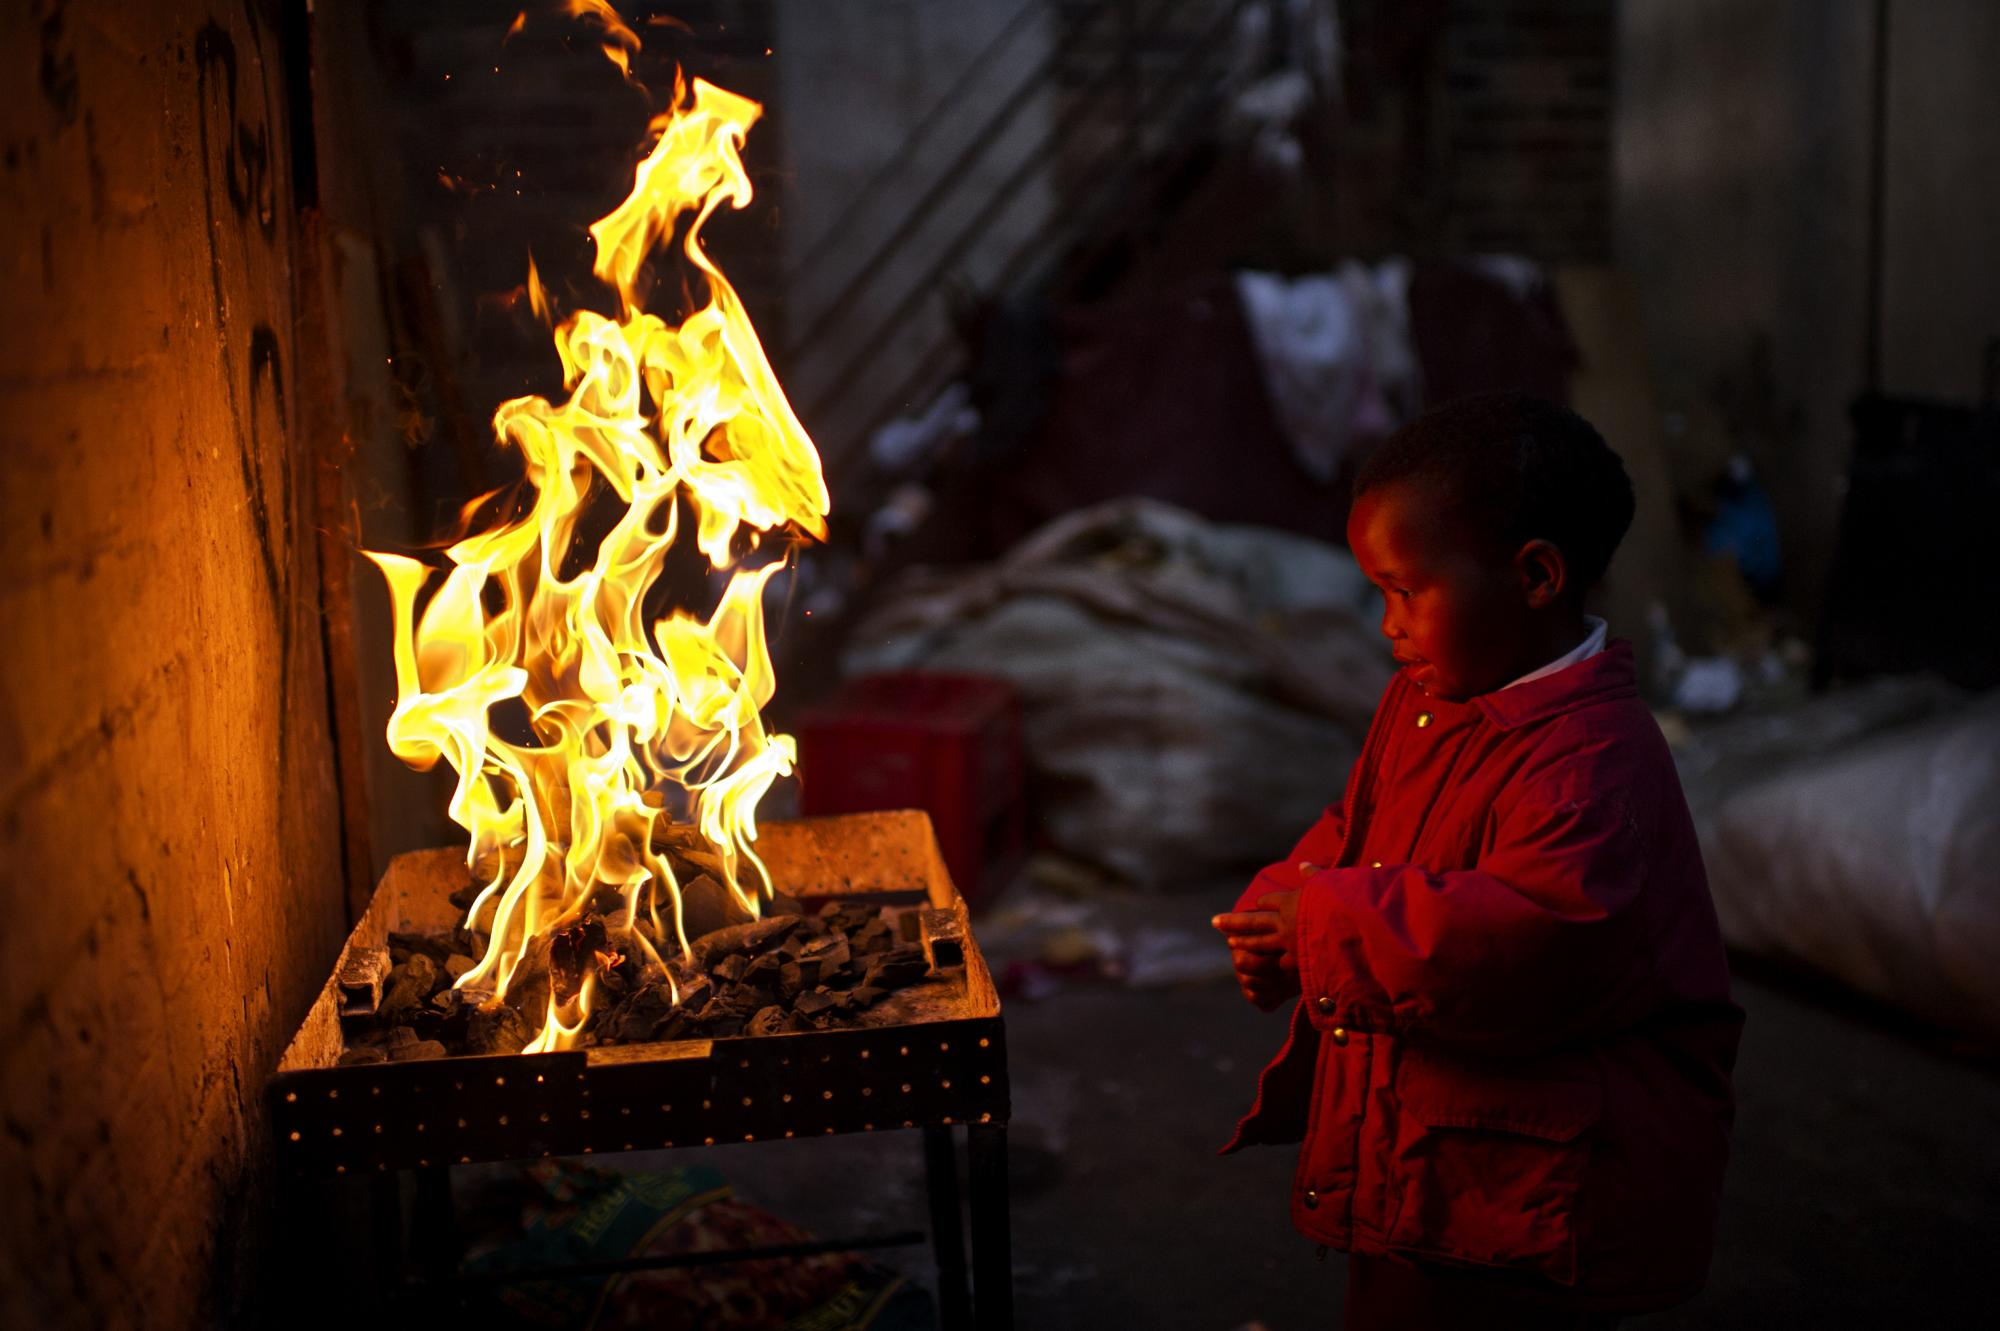 Johannesburg, South Africa. June 2011. Elephant house slum building. A kid next to the fire.